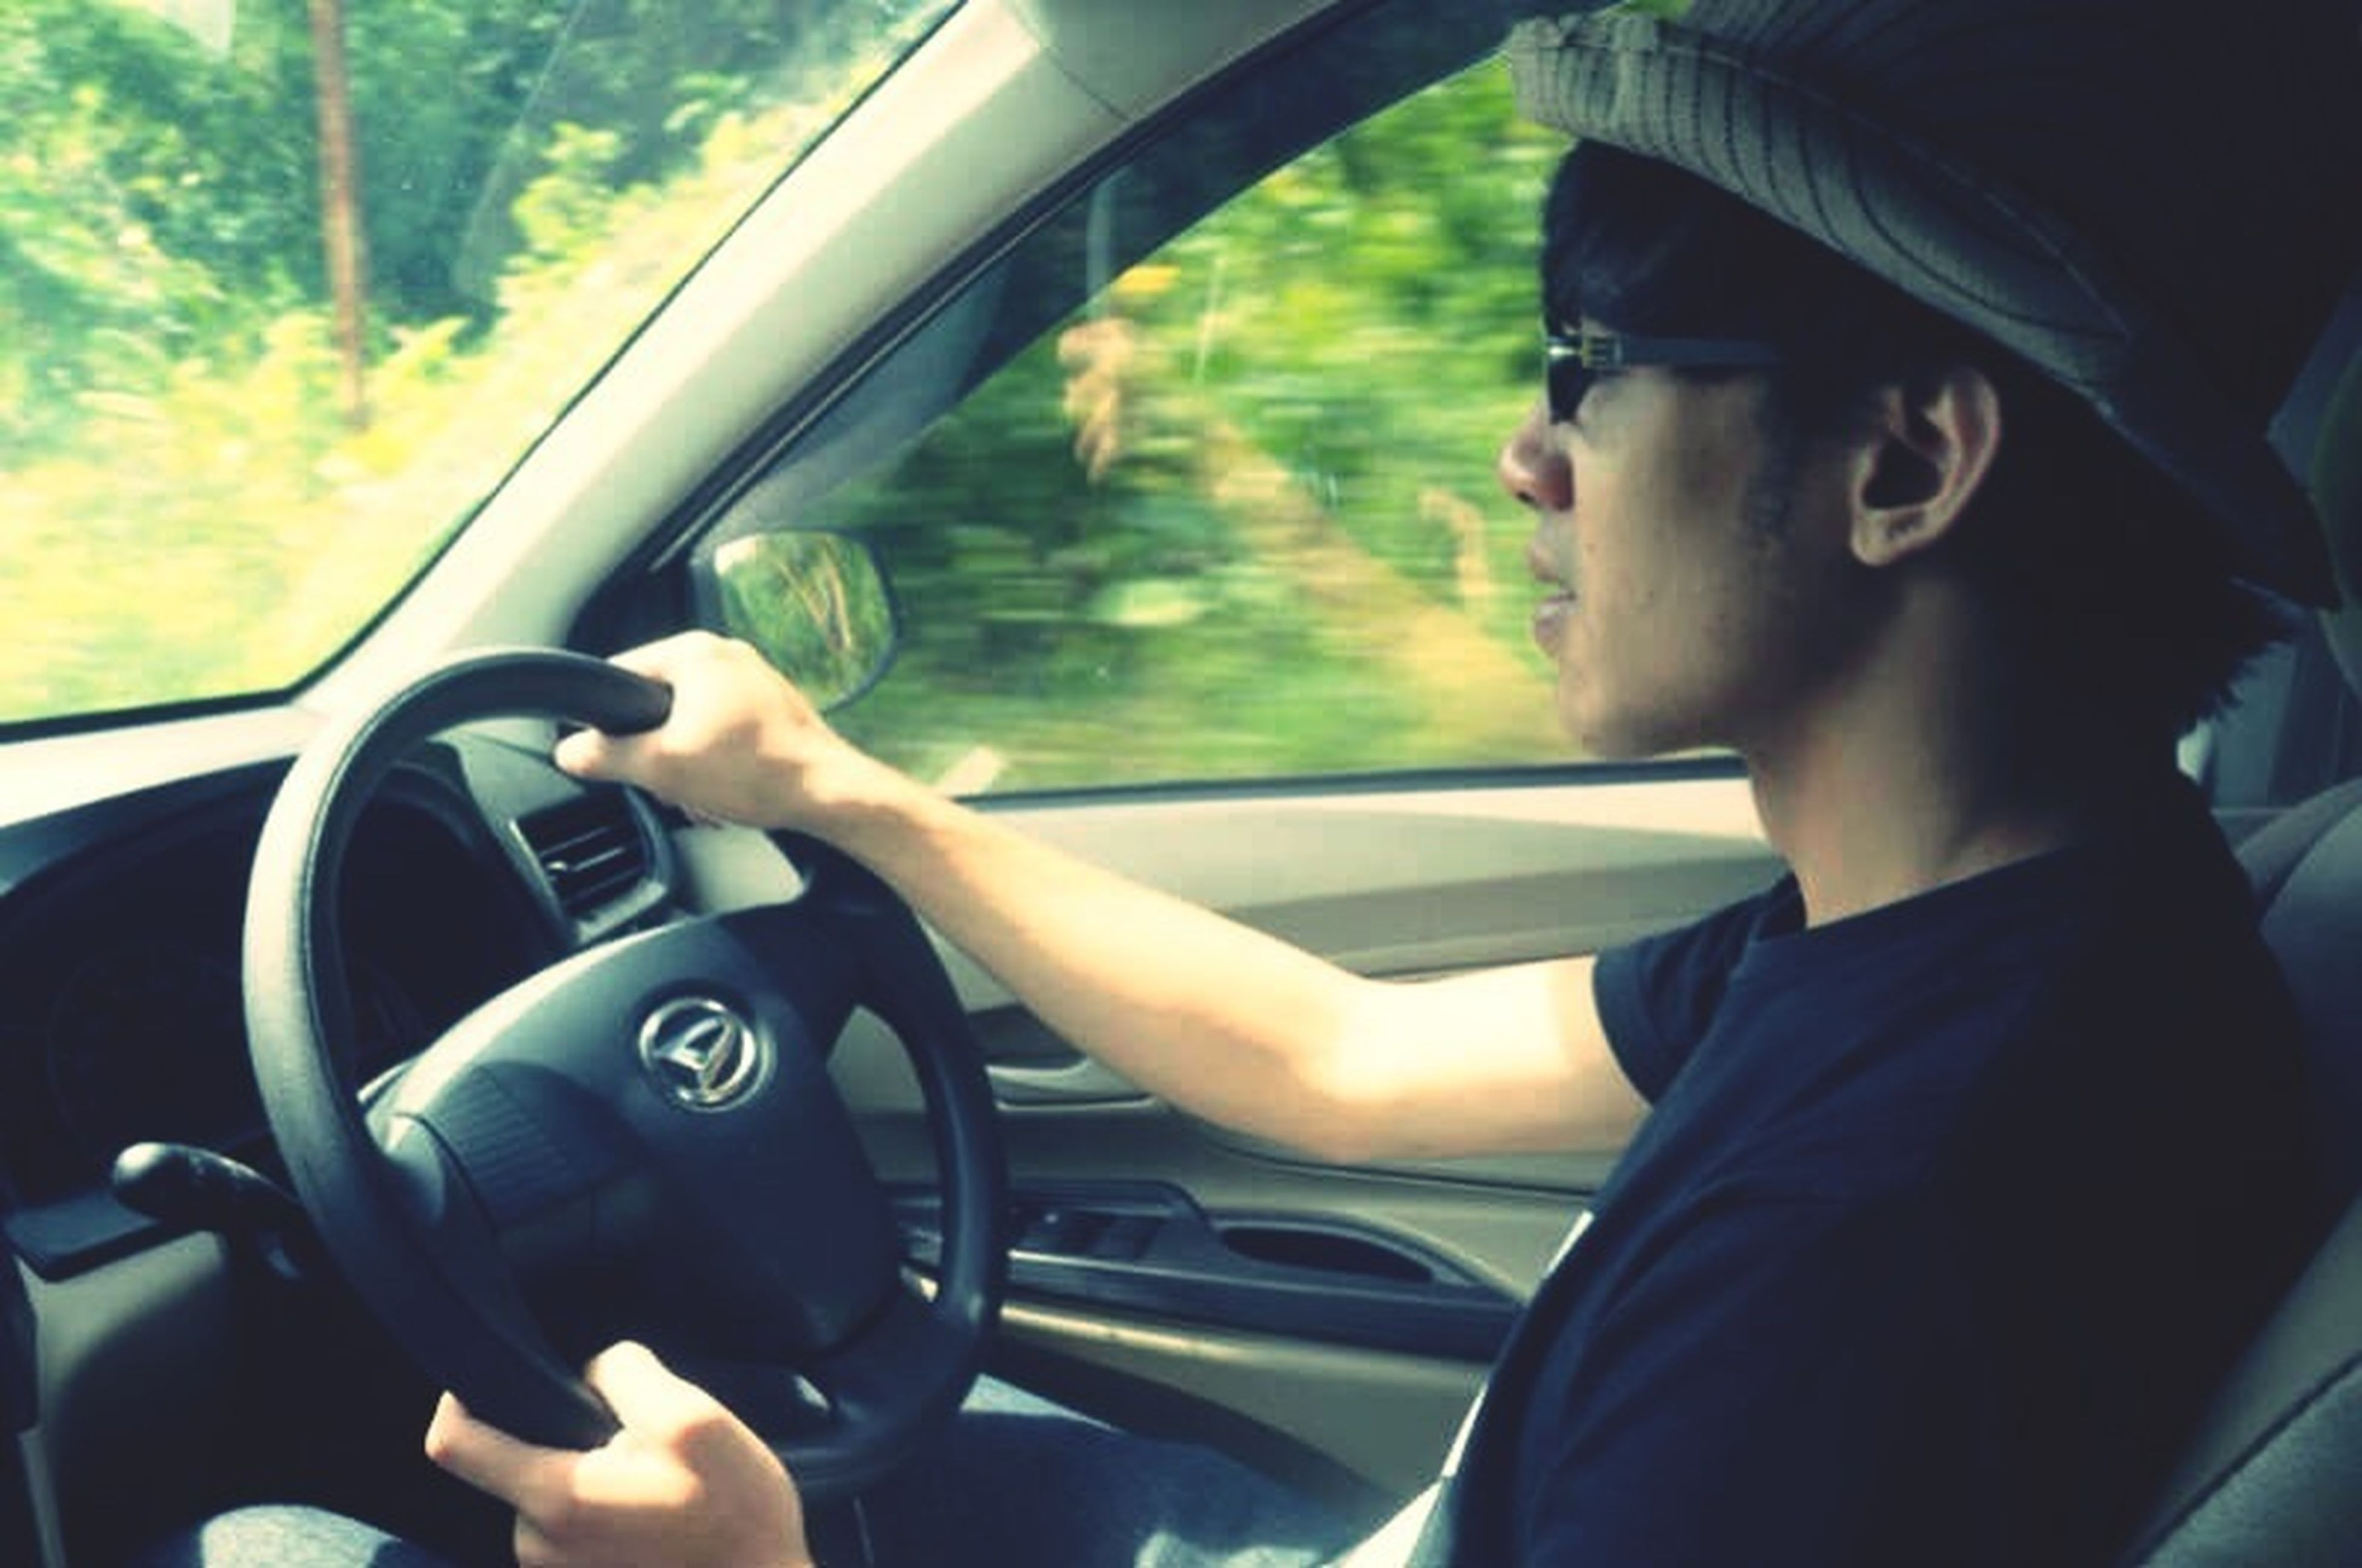 transportation, mode of transport, land vehicle, car, vehicle interior, car interior, travel, part of, steering wheel, side-view mirror, driving, lifestyles, journey, windshield, leisure activity, glass - material, window, cropped